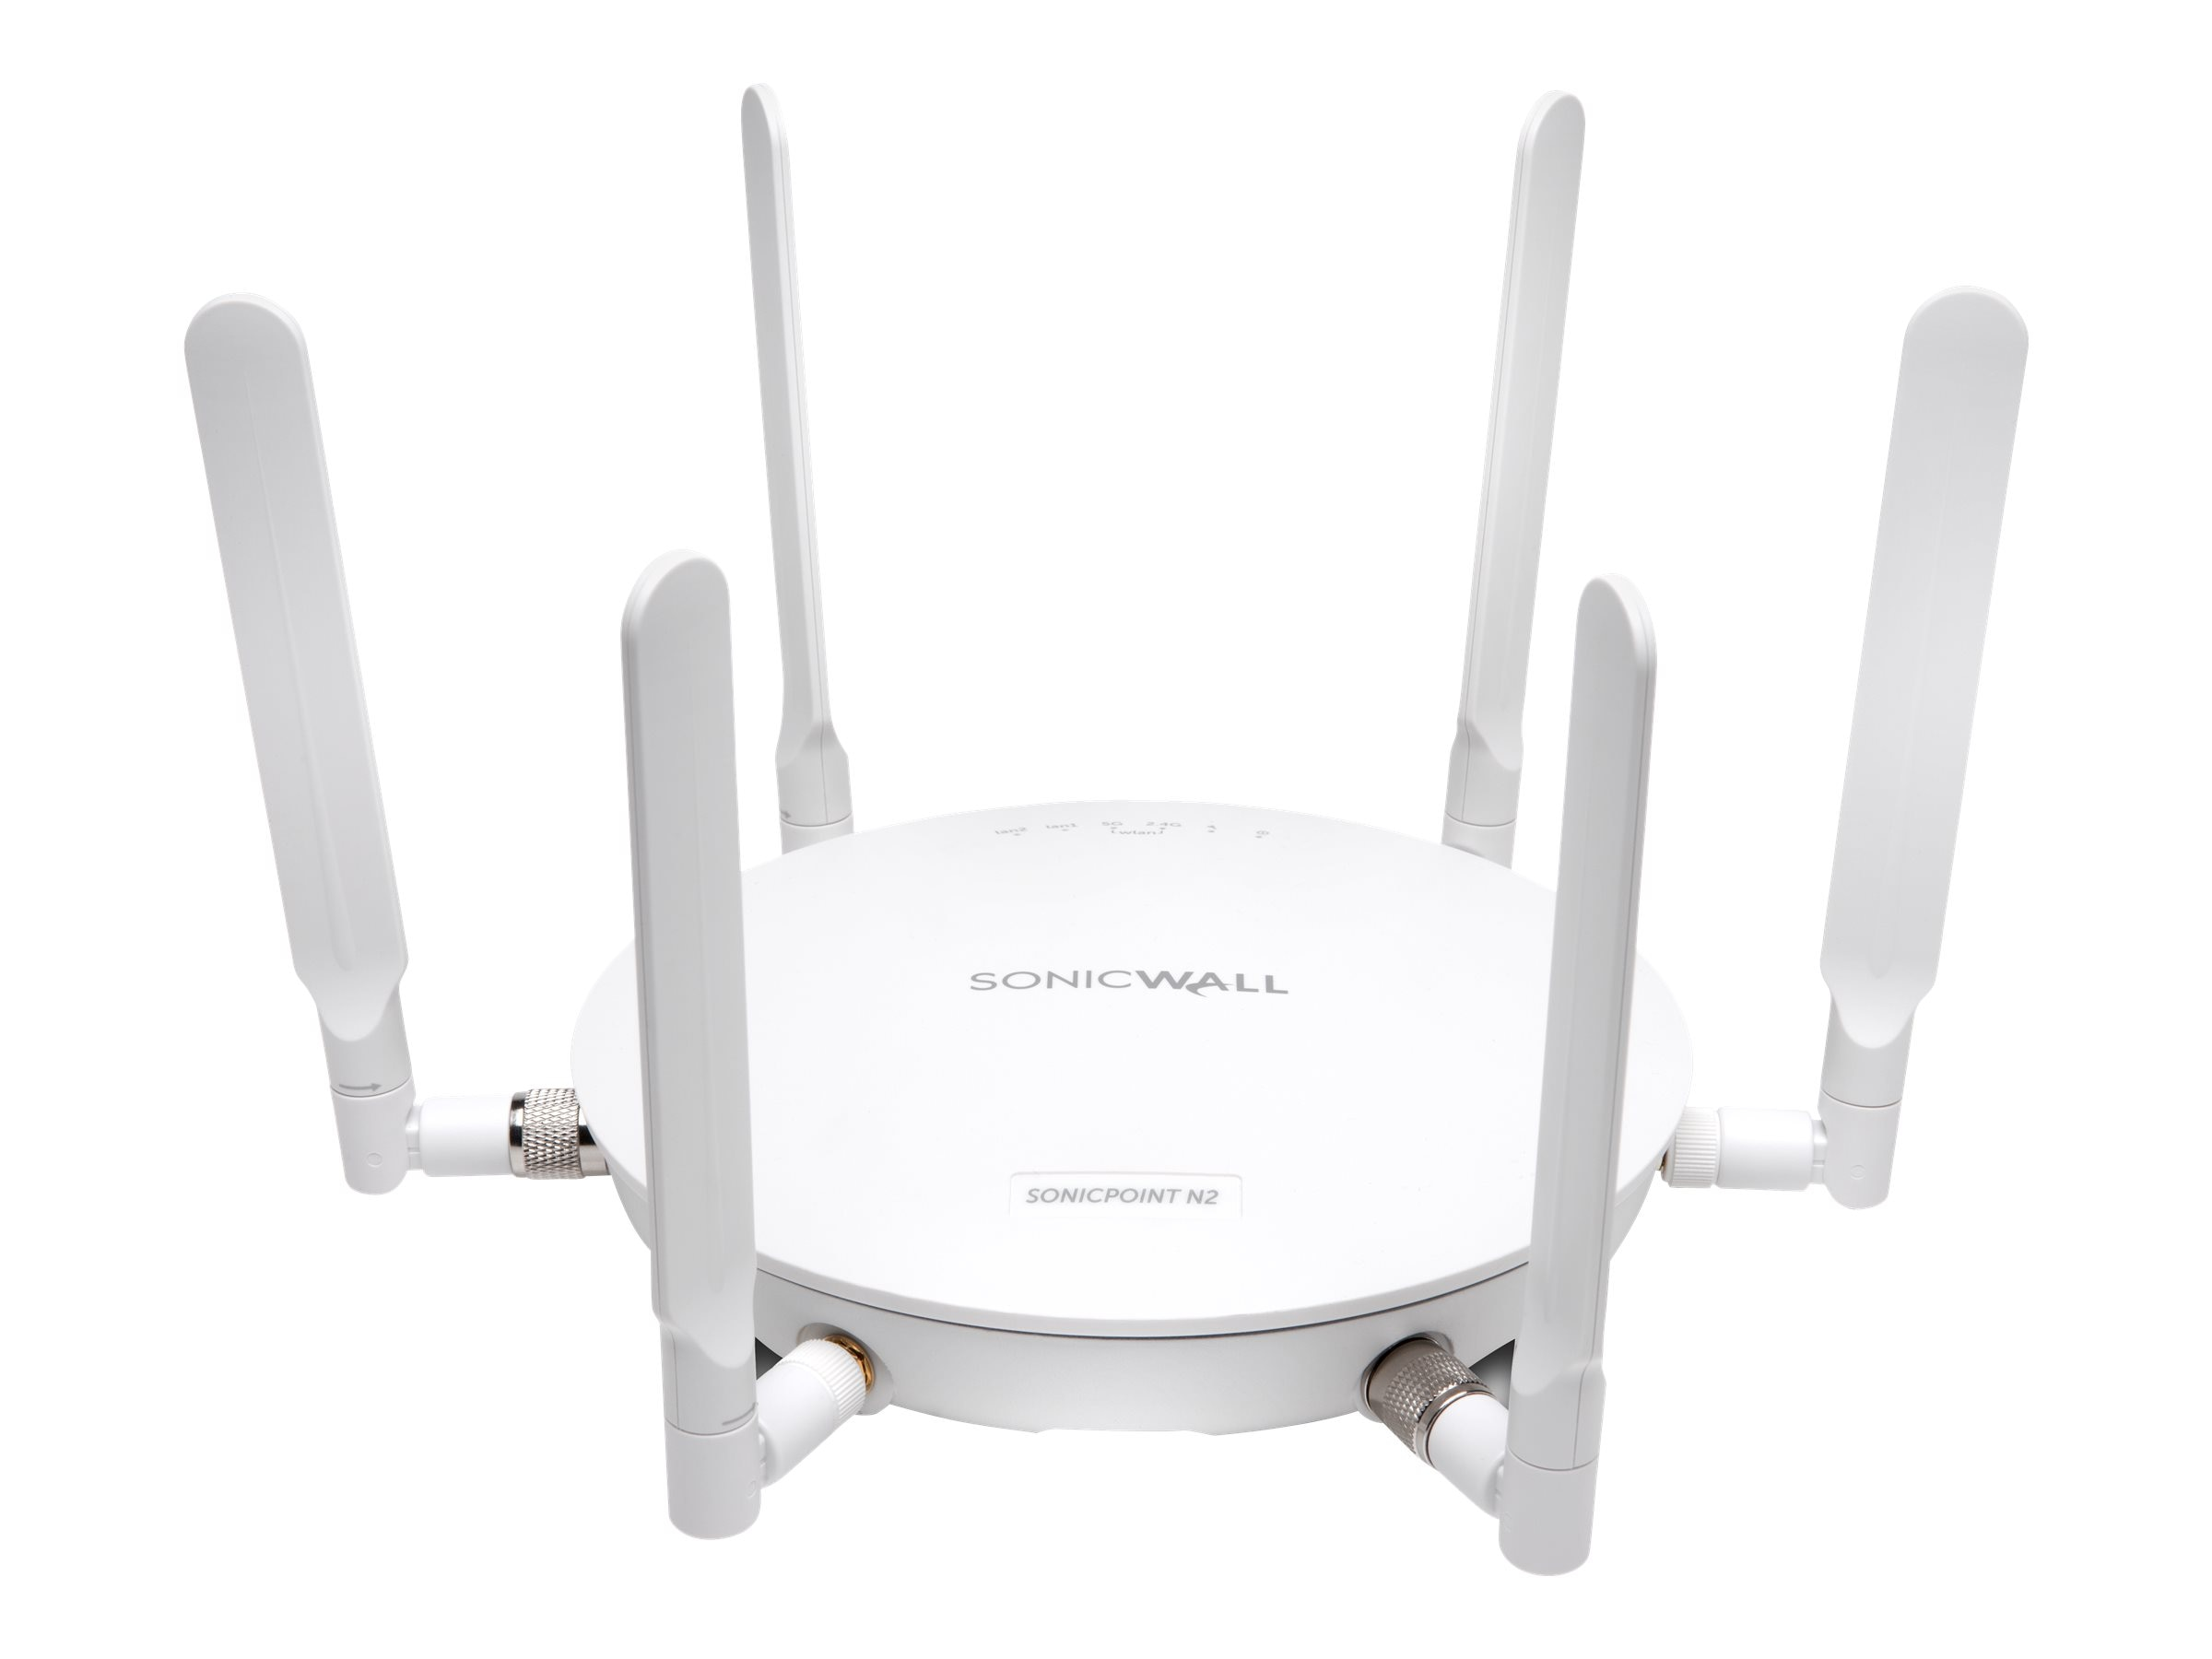 SonicWALL 01-SSC-0876 Image 1